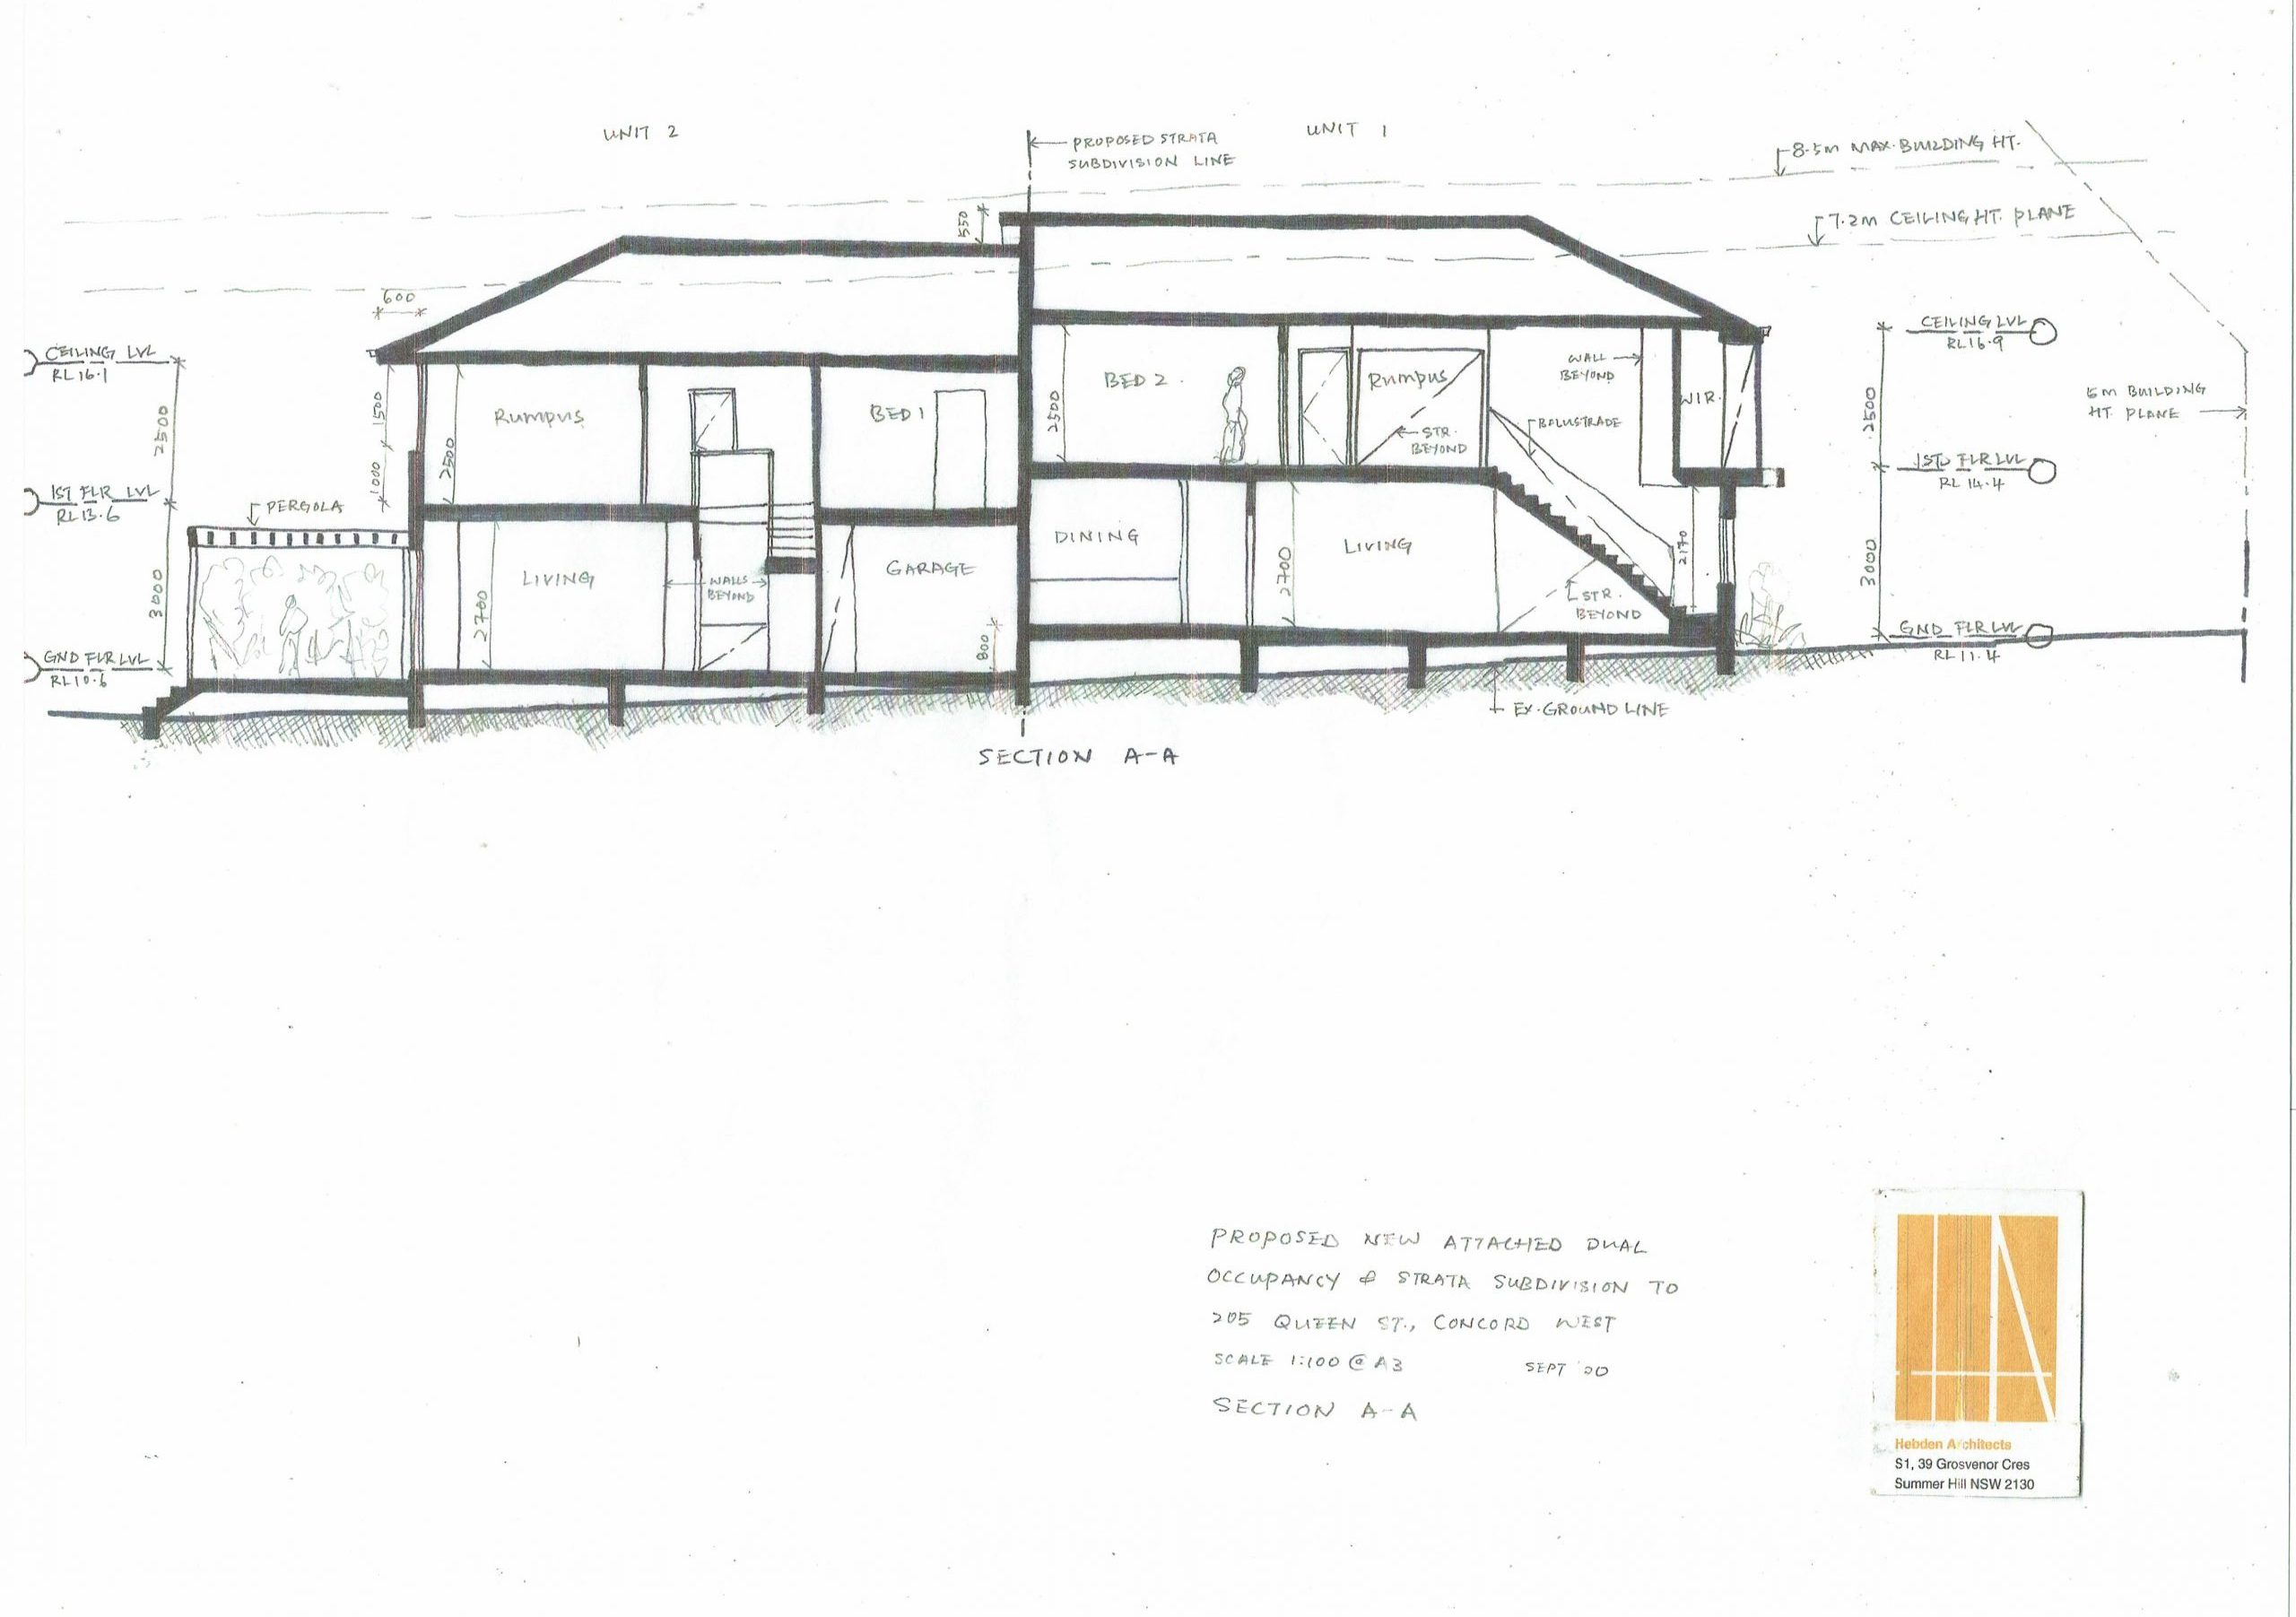 Duplex Concord West Sketch Drawings 16 09 2020 Page 5